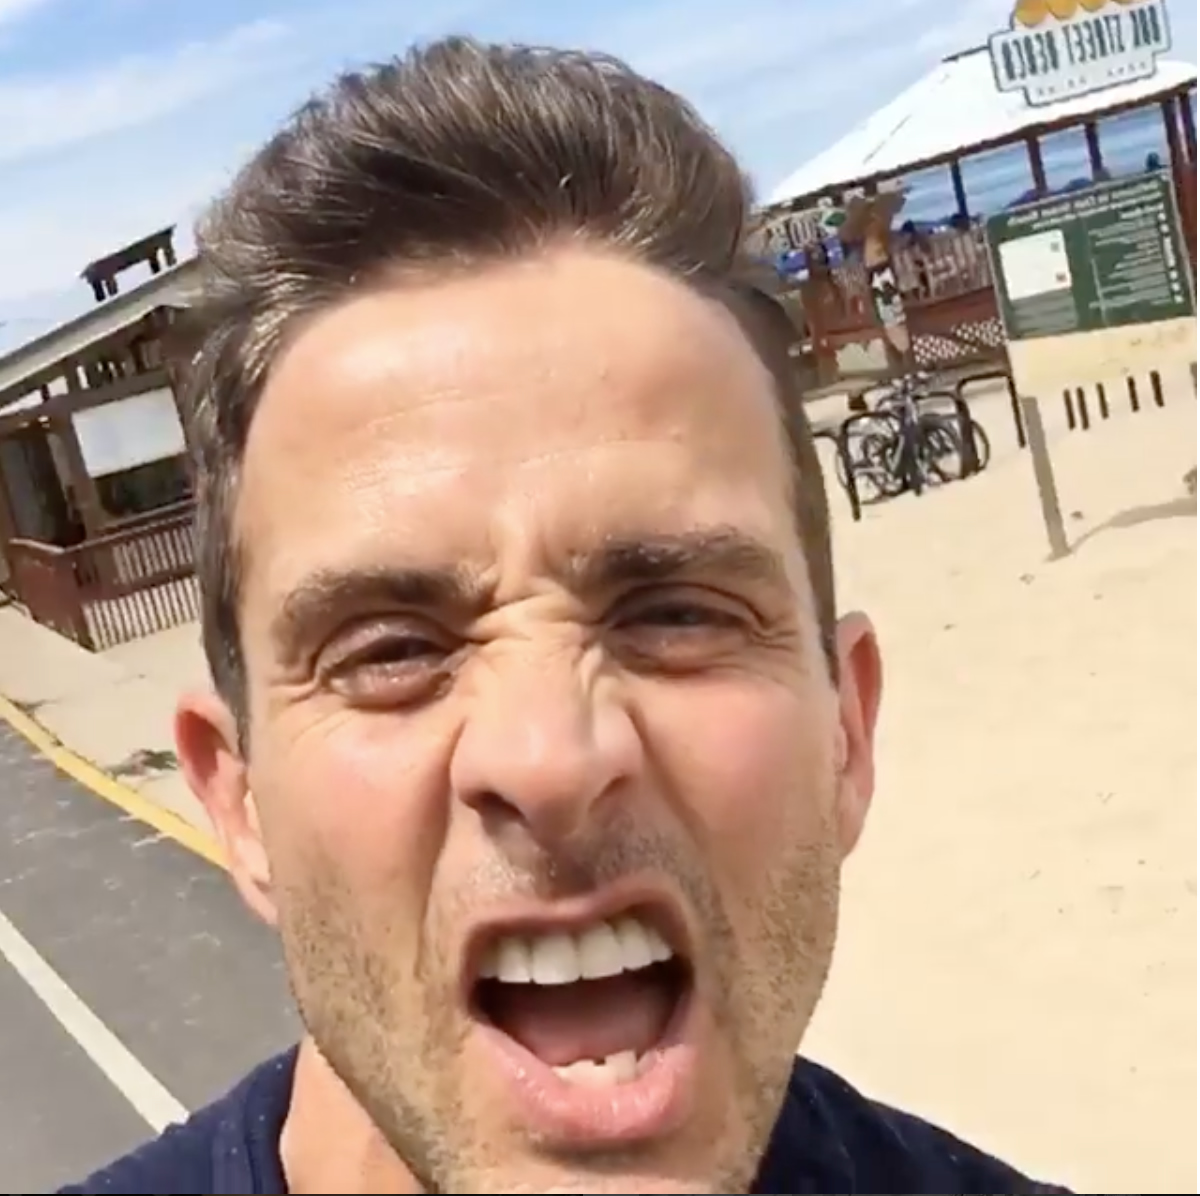 Oak Street Beach 20170616 Joey Mcintyre Instagram Map